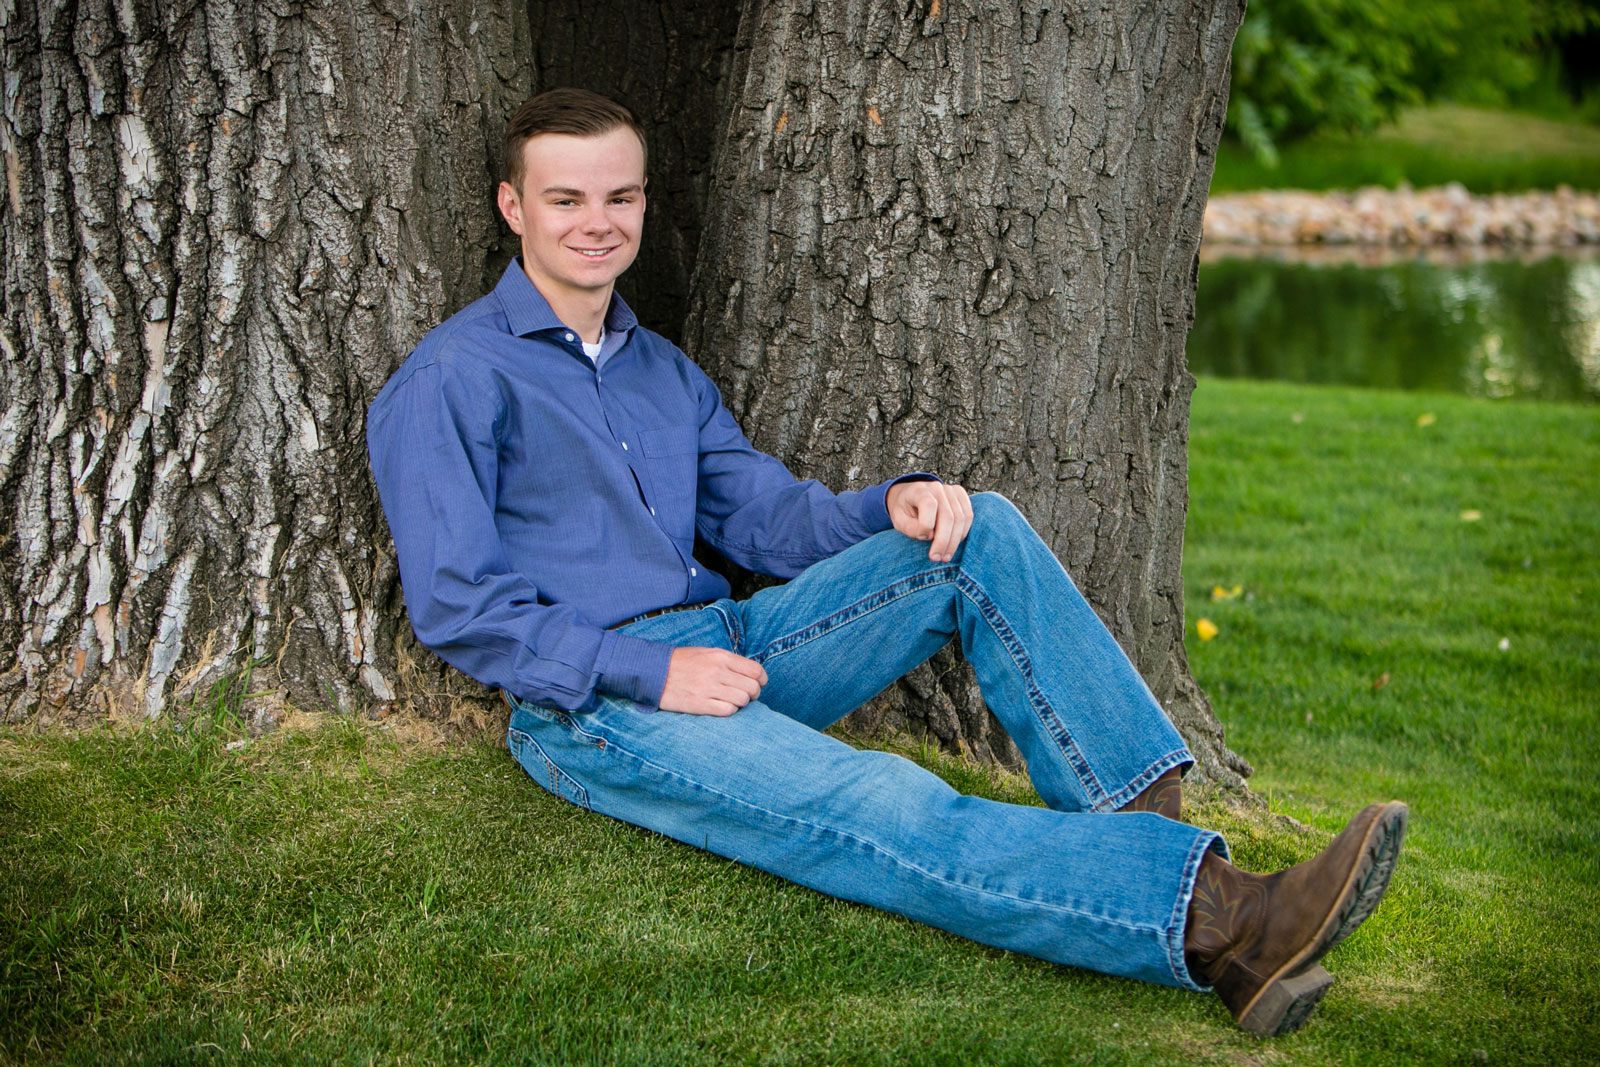 Casey's Wheat Ridge High School Pictures